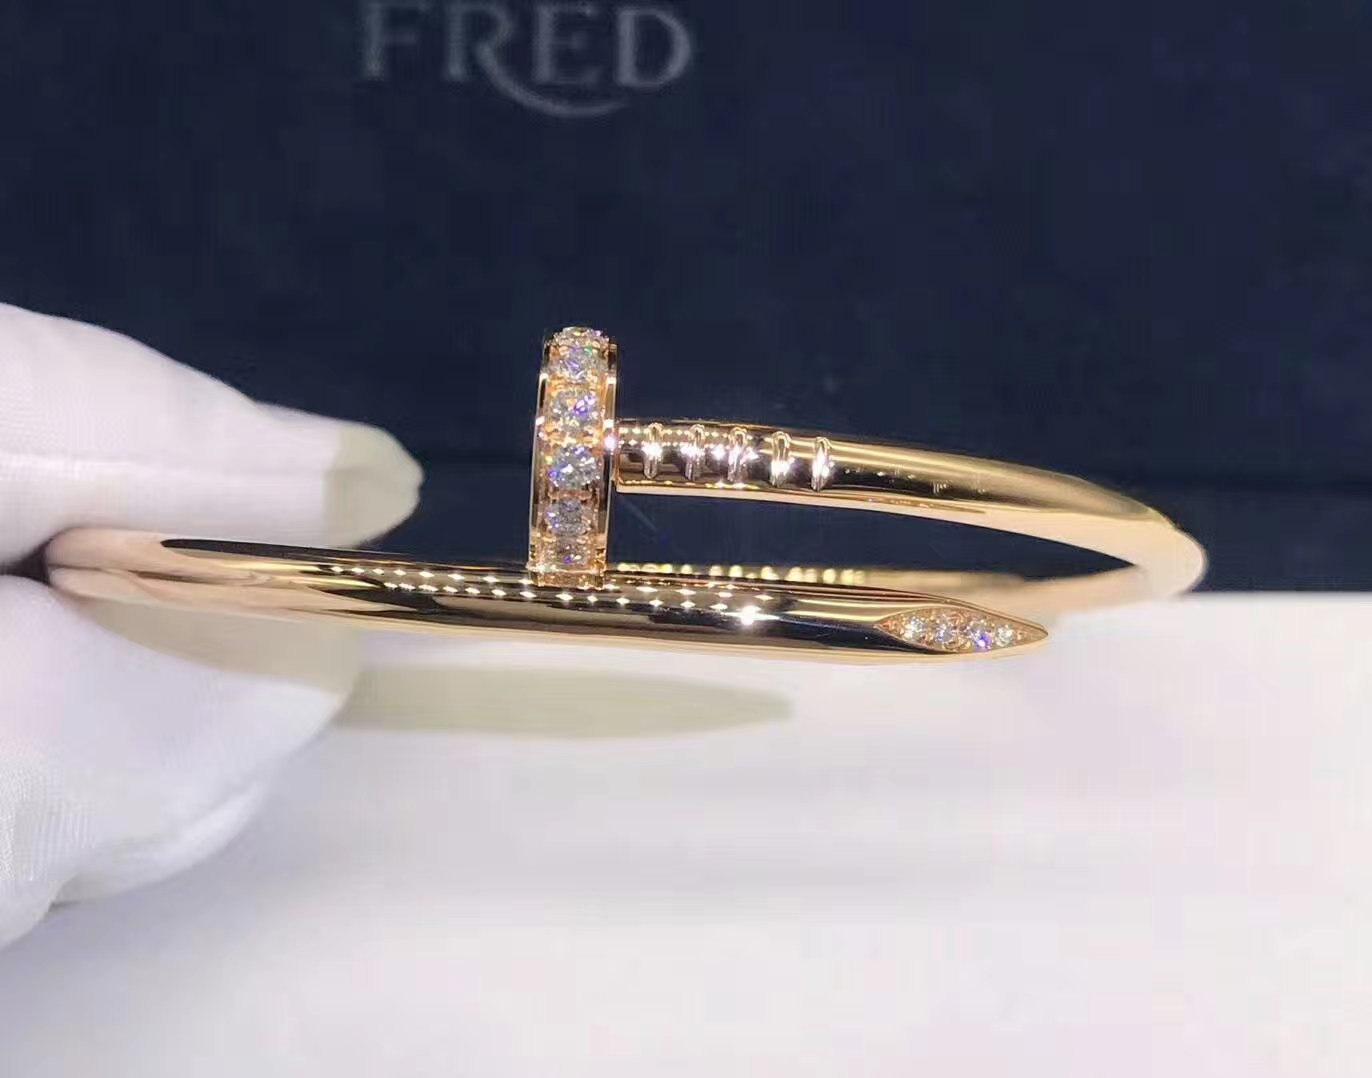 18k Gold Cartier Juste Un Clou Bracelet Set with Diamonds Both Ends